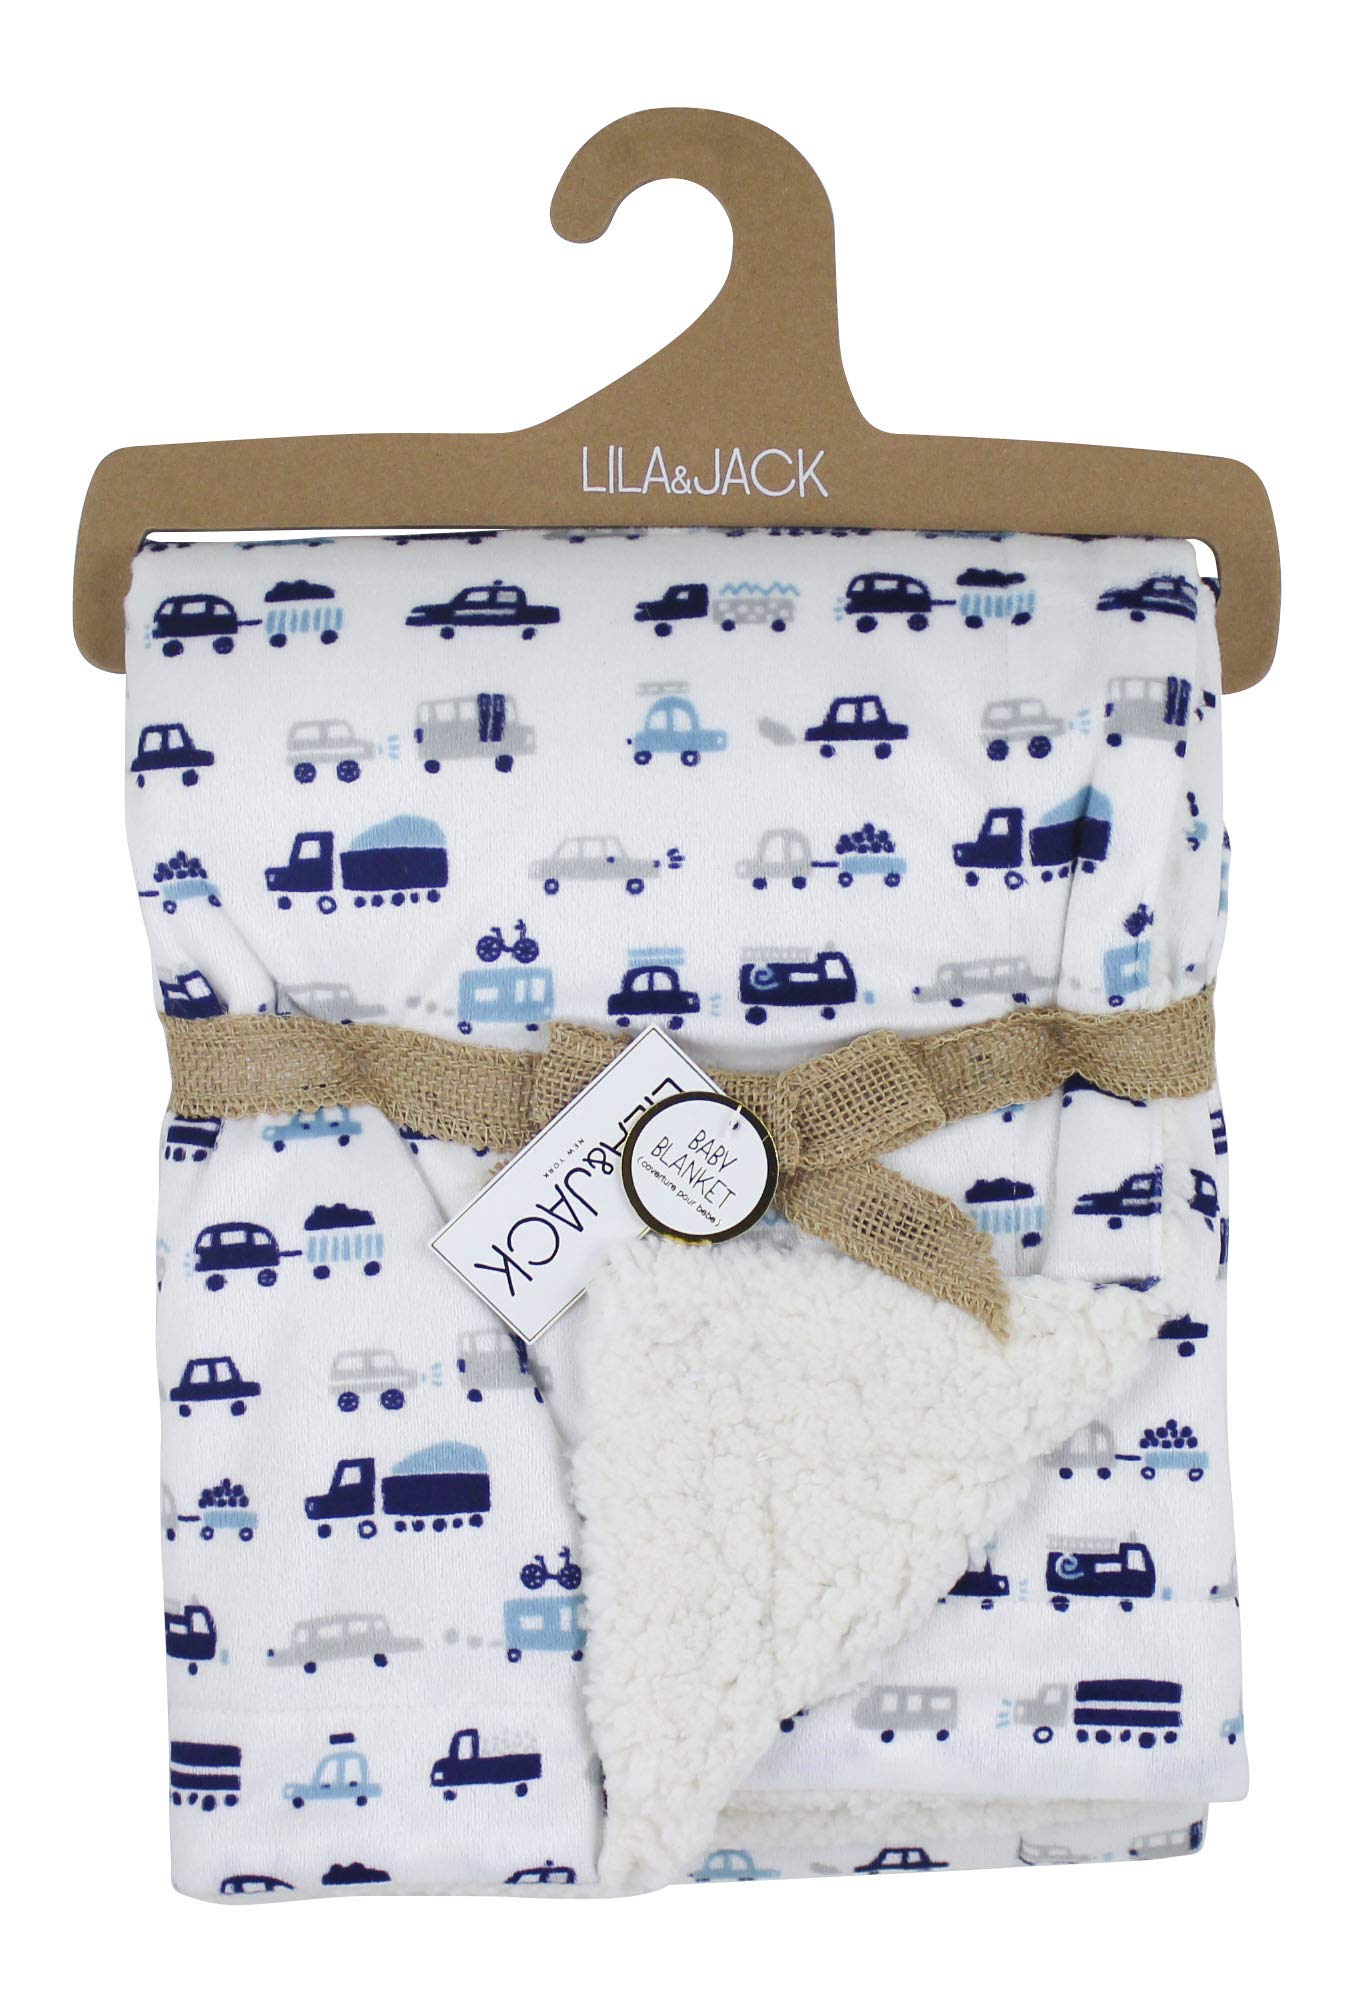 Lila and Jack Soft Baby Blanket - Soft Minky Blanket Perfect, Crib Blanket, Baby Car Blanket & More. Plush Blanket Perfect for Newborns and Toddlers (Cars)